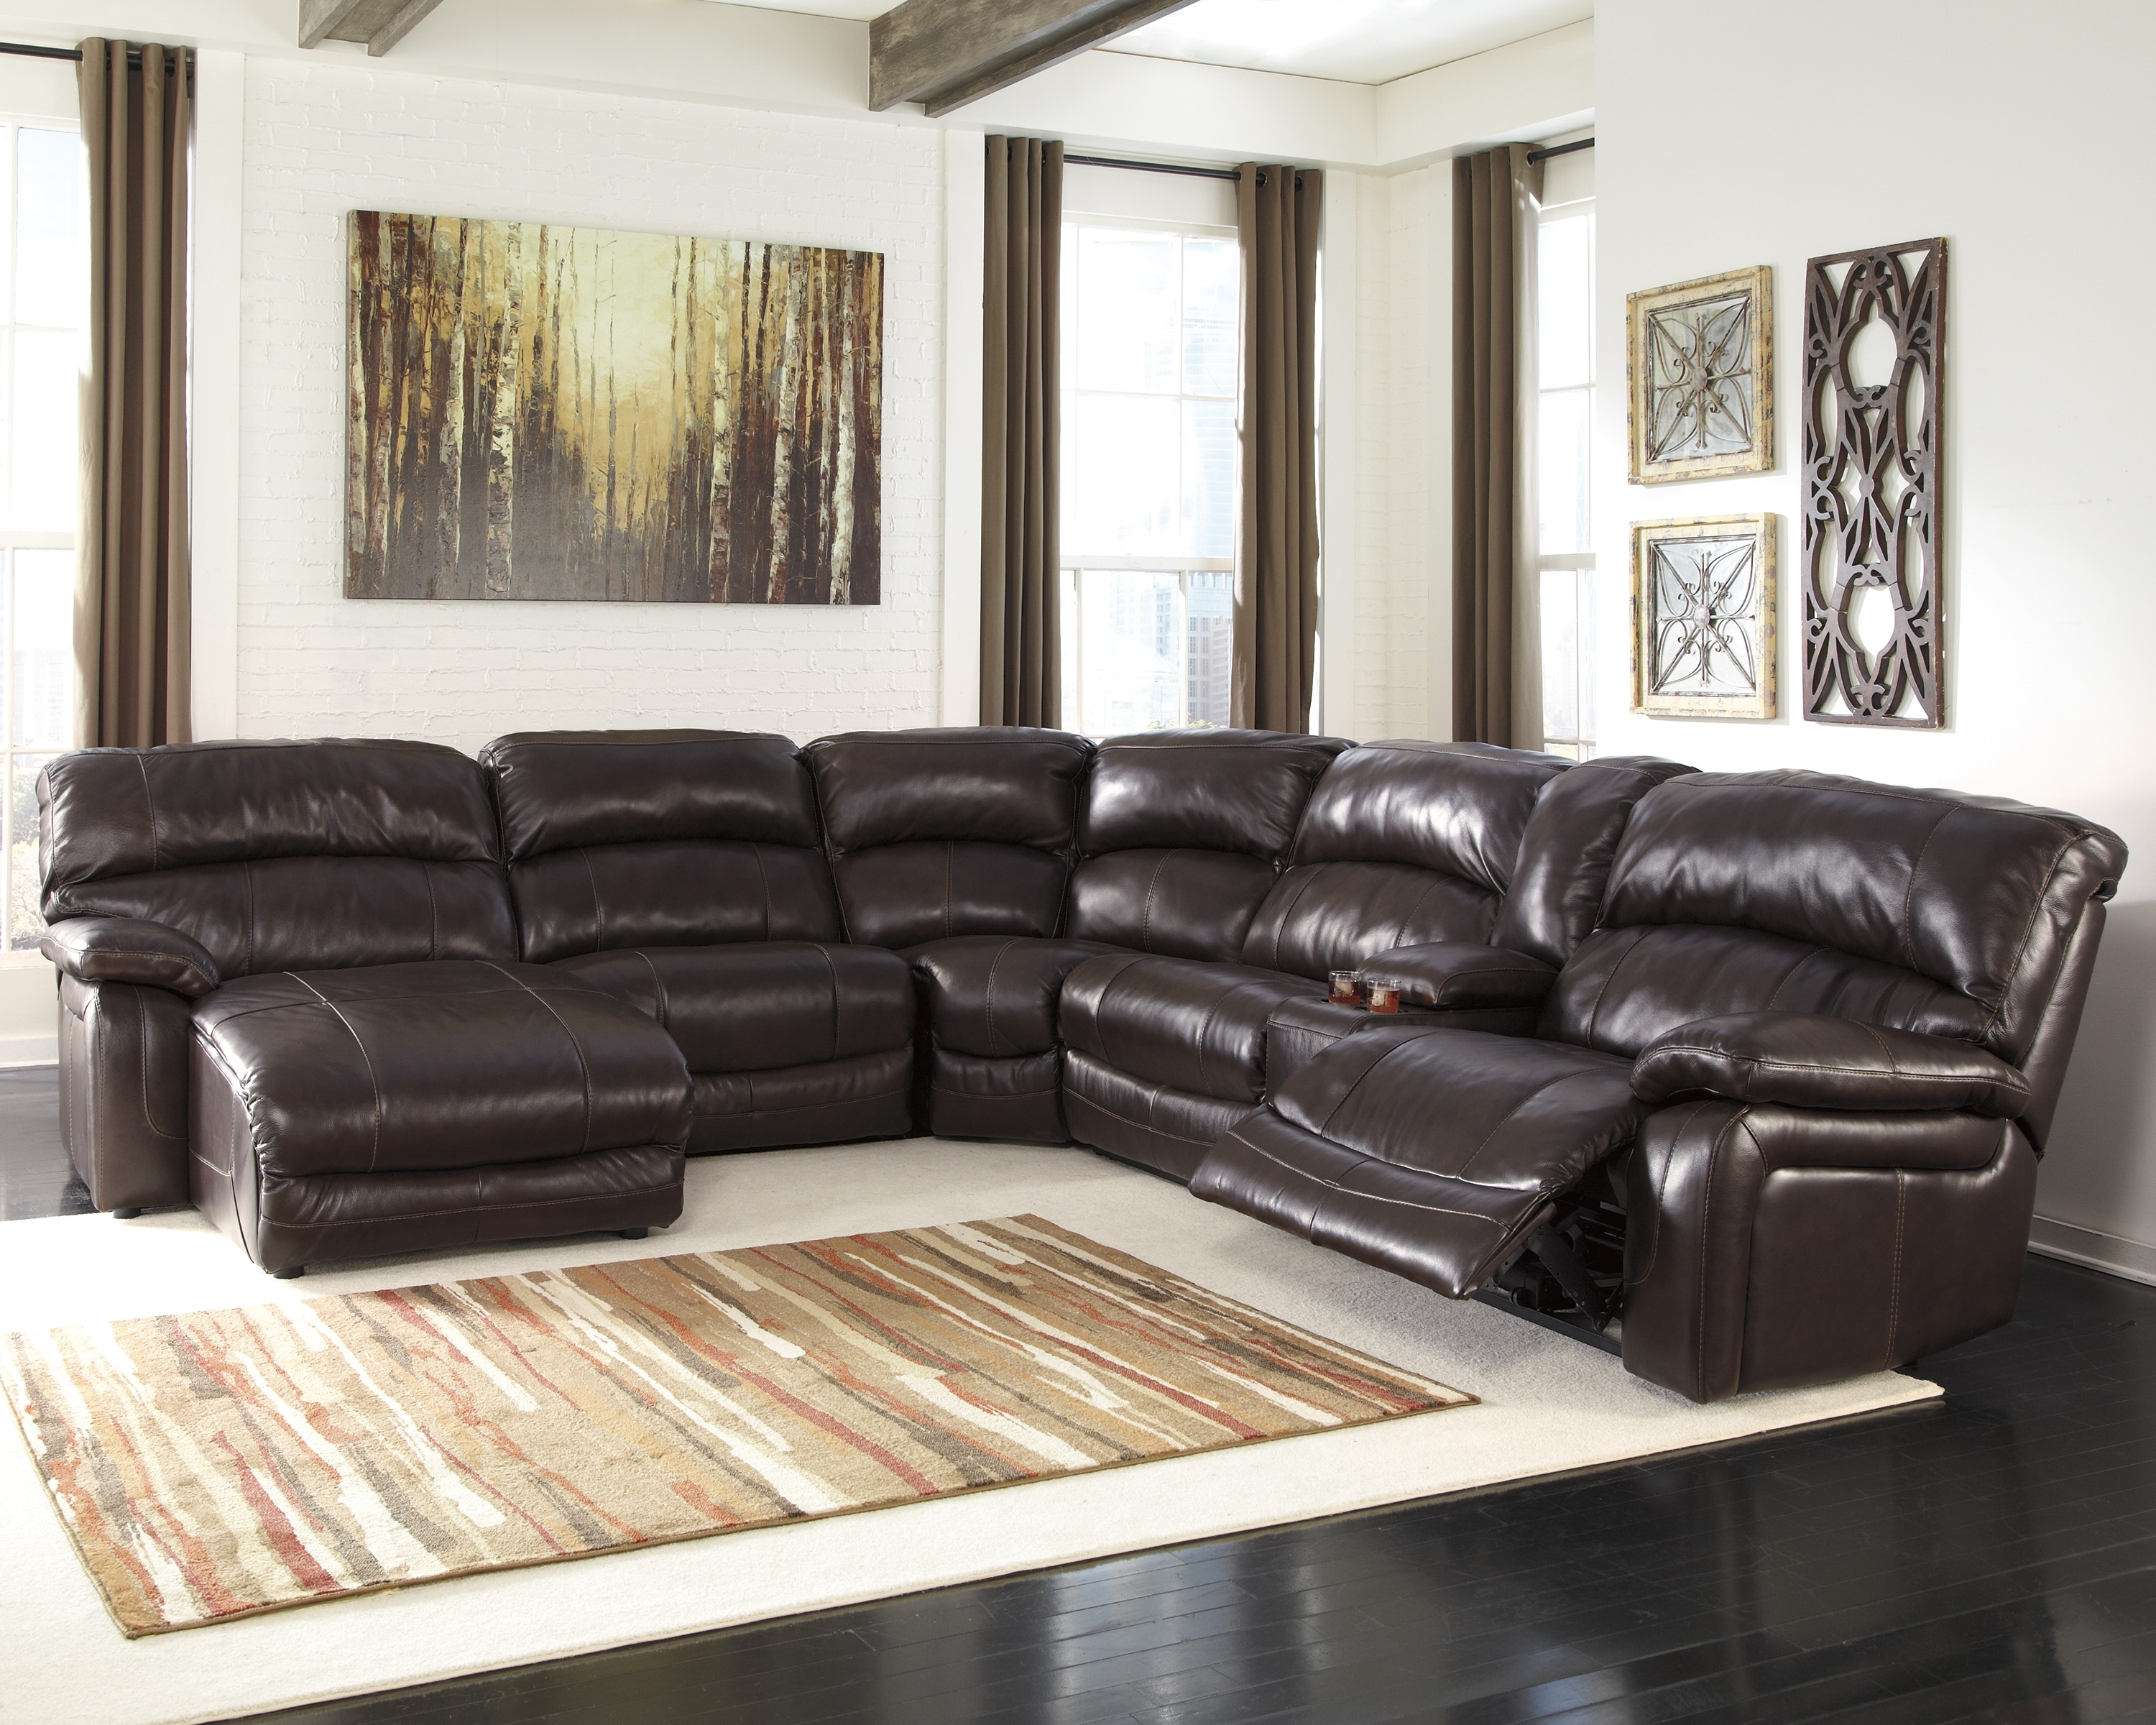 Cheap Sectional With Regard To Raymour And Flanigan Sectional Sofas (View 5 of 15)